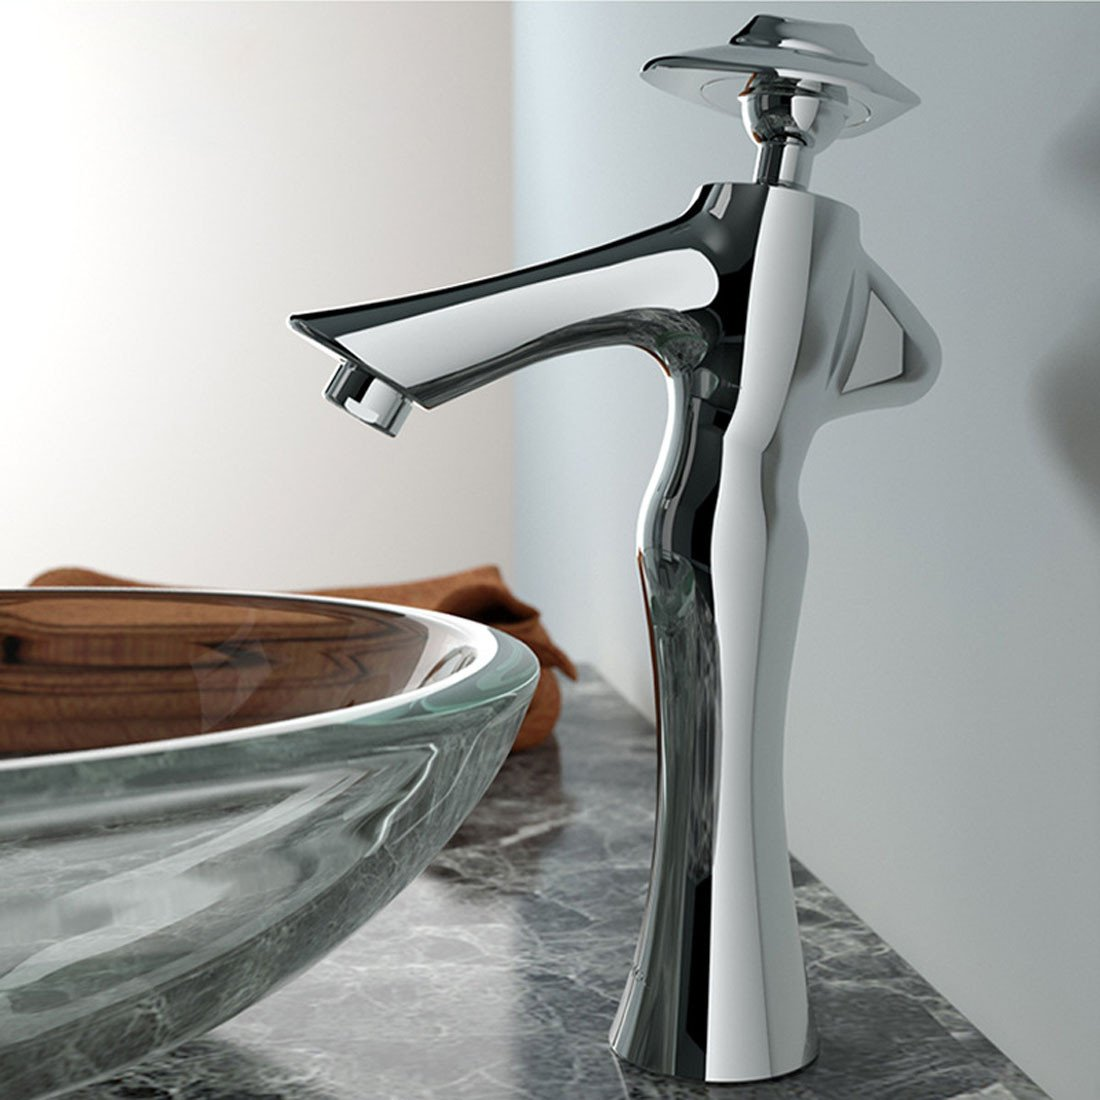 MDRW-Lady's hot and cold water faucet by MDRW